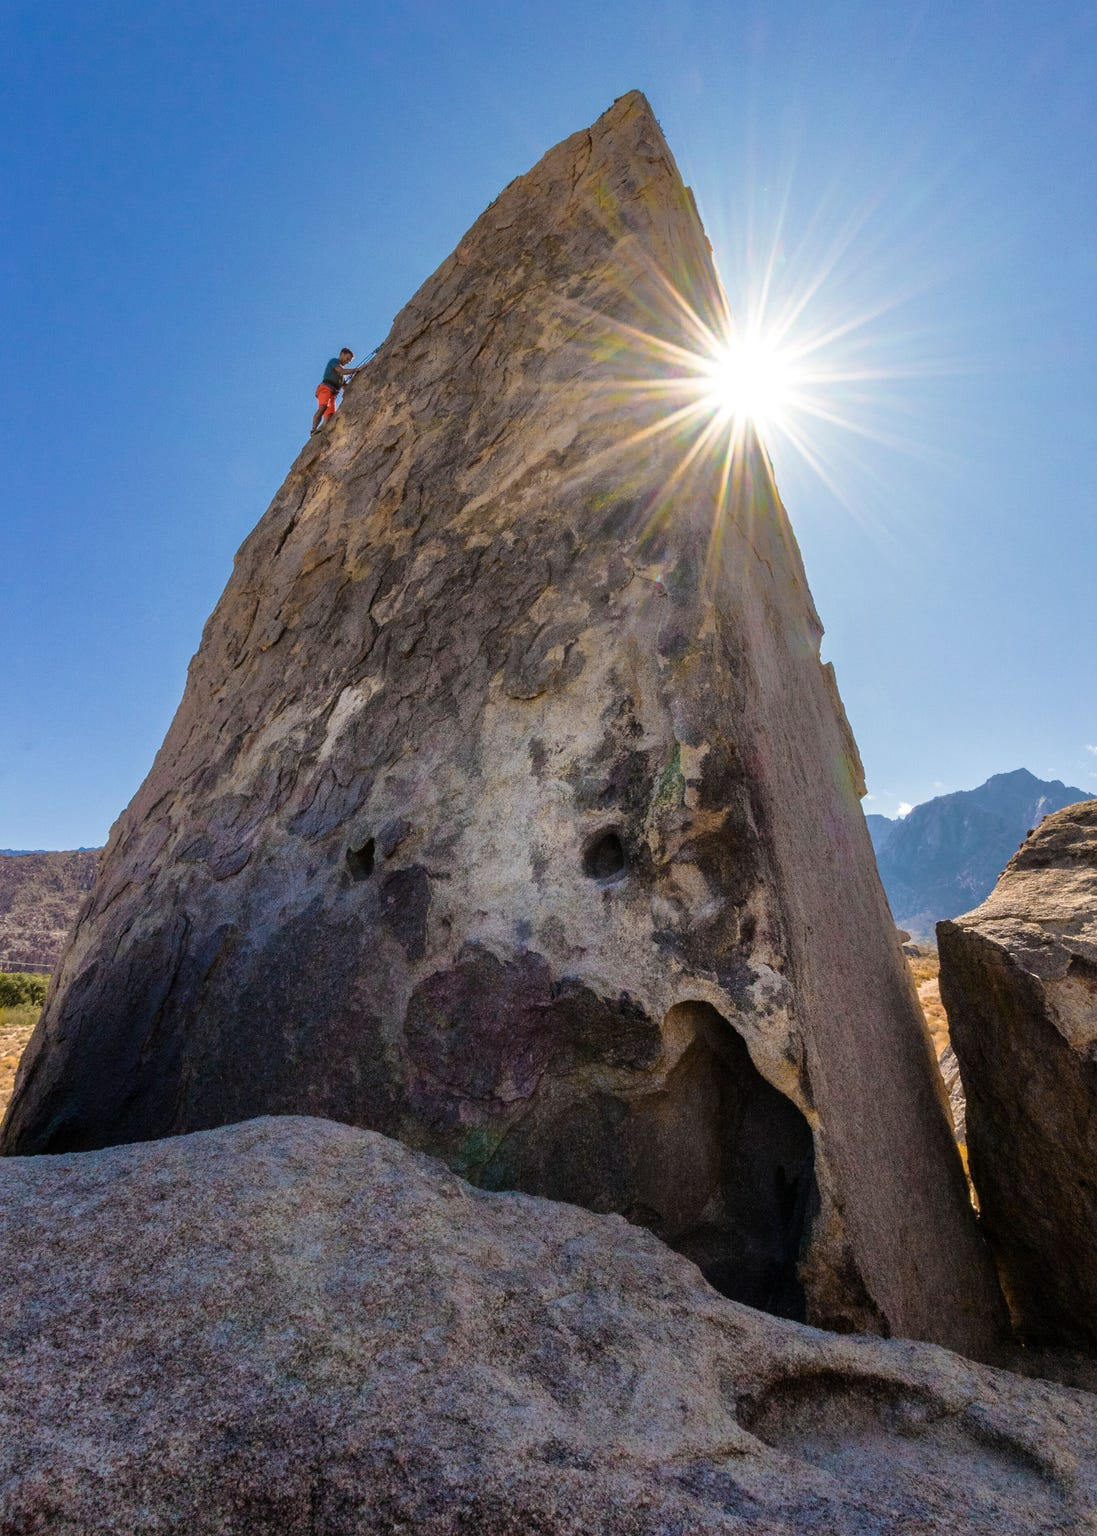 A climber on the Shark's Fin Arete in Alabama Hills.